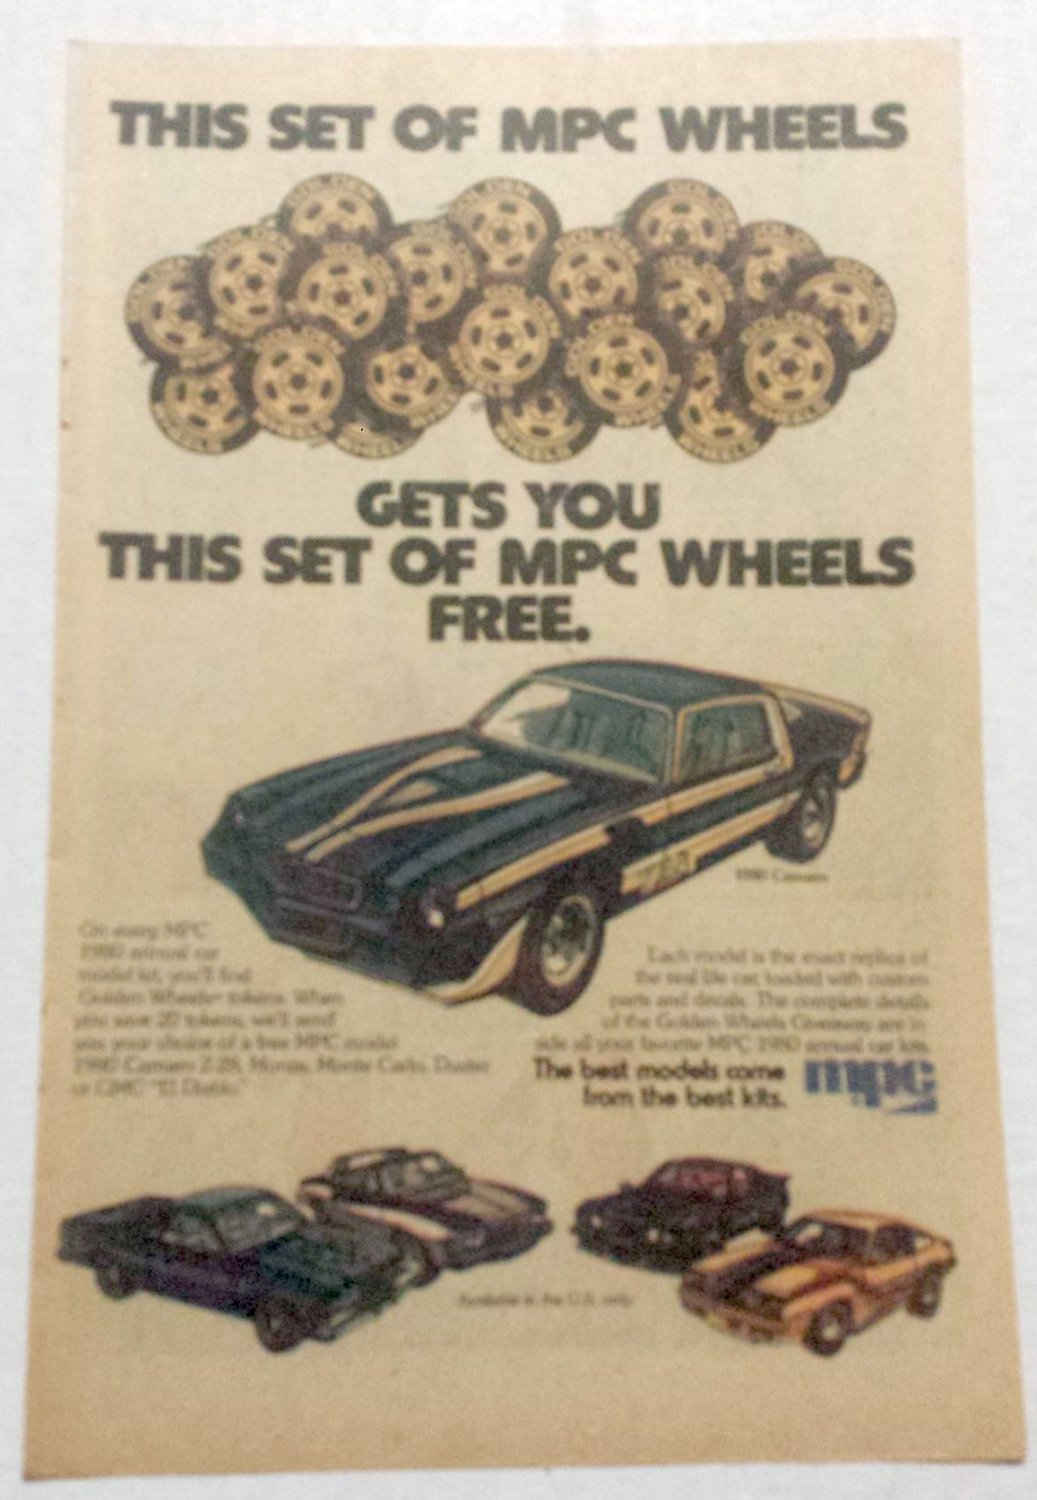 MPC WHEELS MPC / GMC VINTAGE COMIC AD - 1980